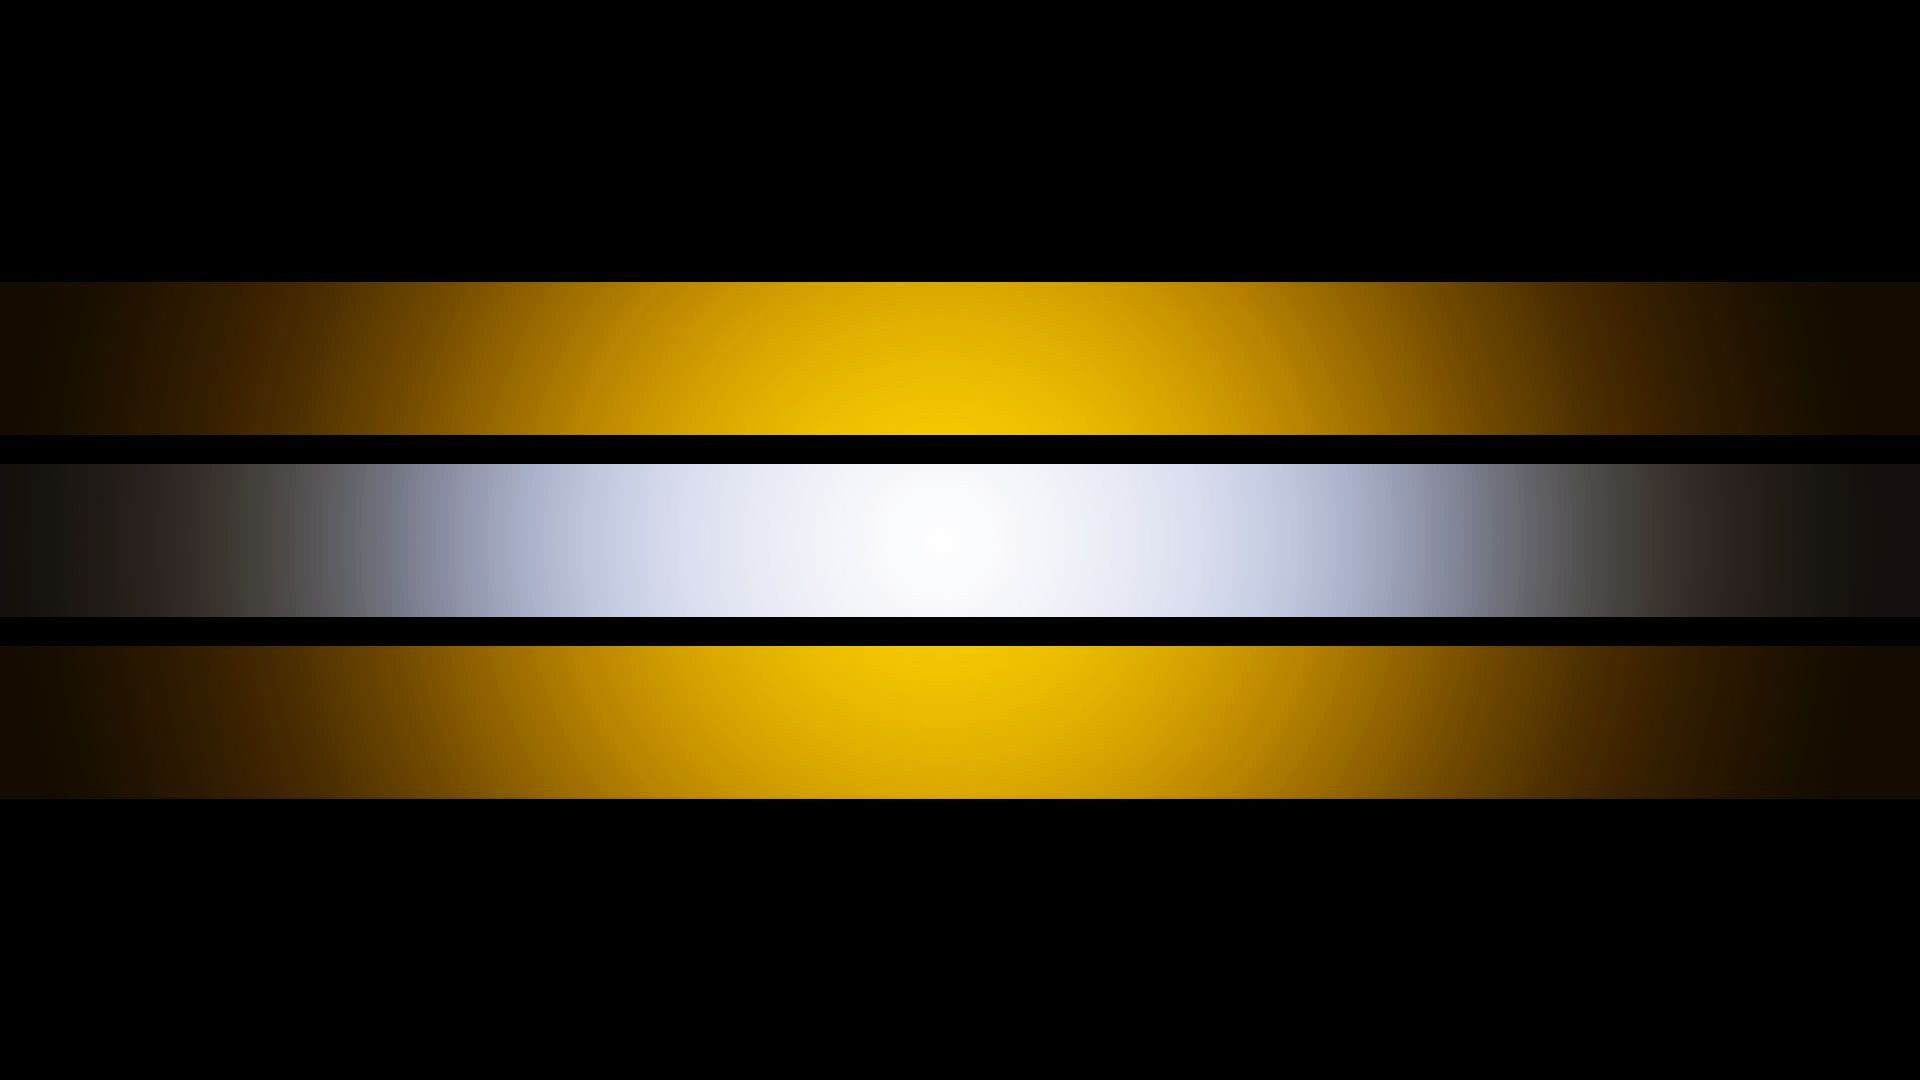 Black And Yellow Backgrounds Sf Wallpaper